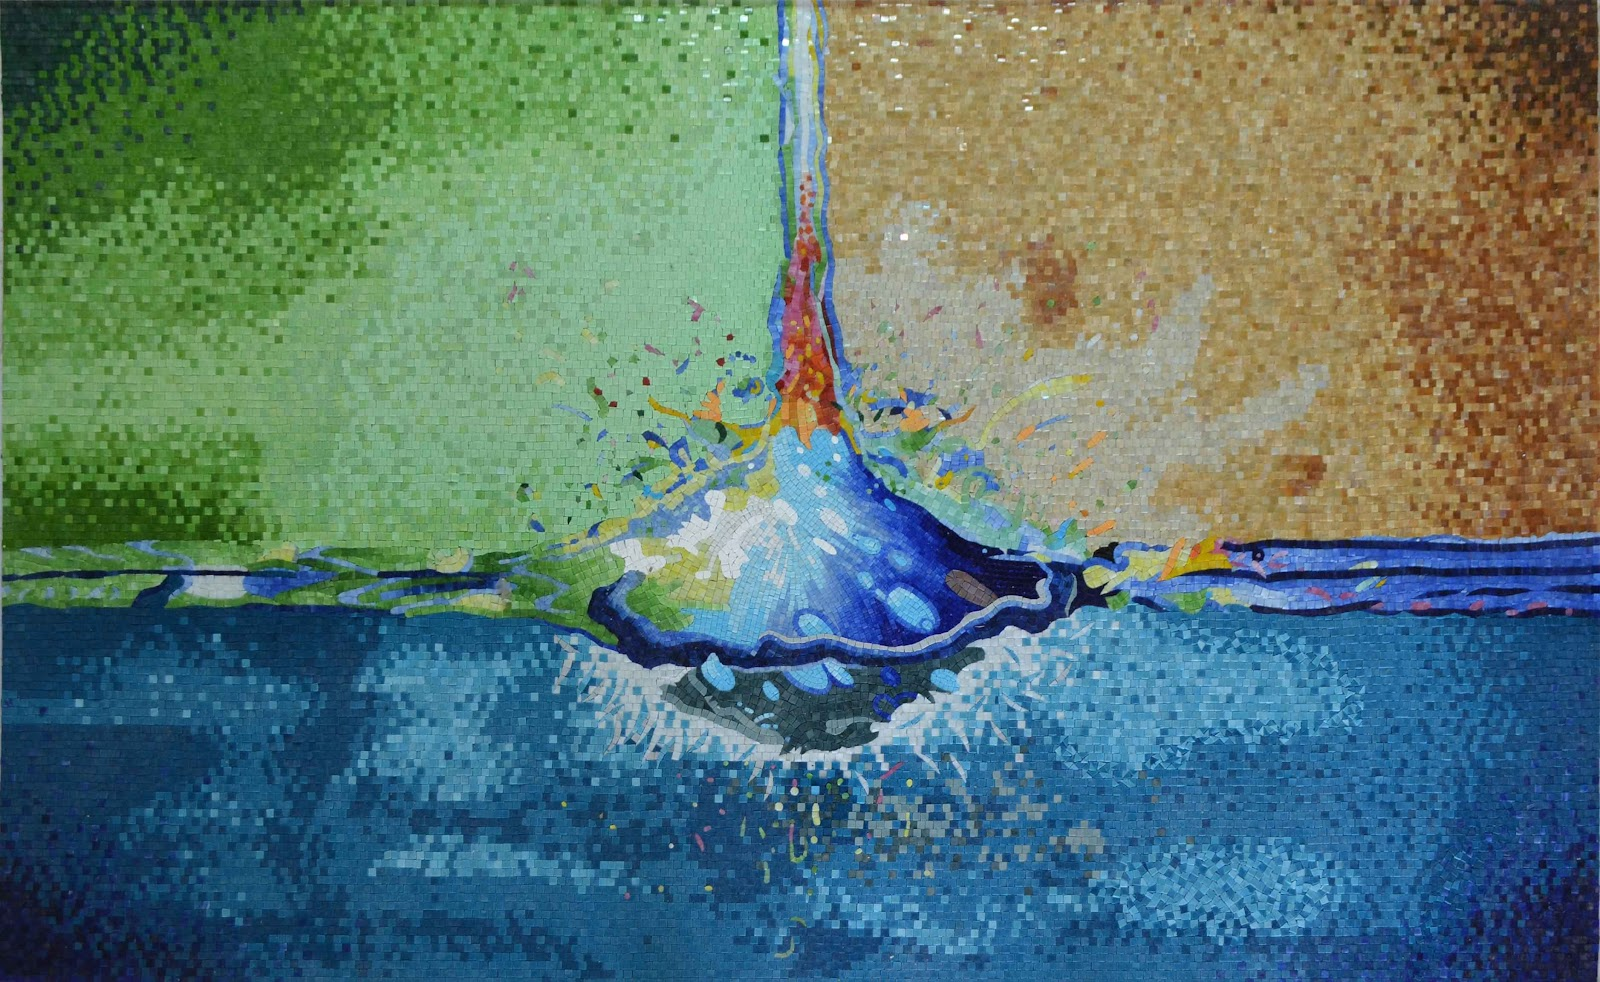 Non-pictorial Splash - Abstract Mosaic Art by Mozaico